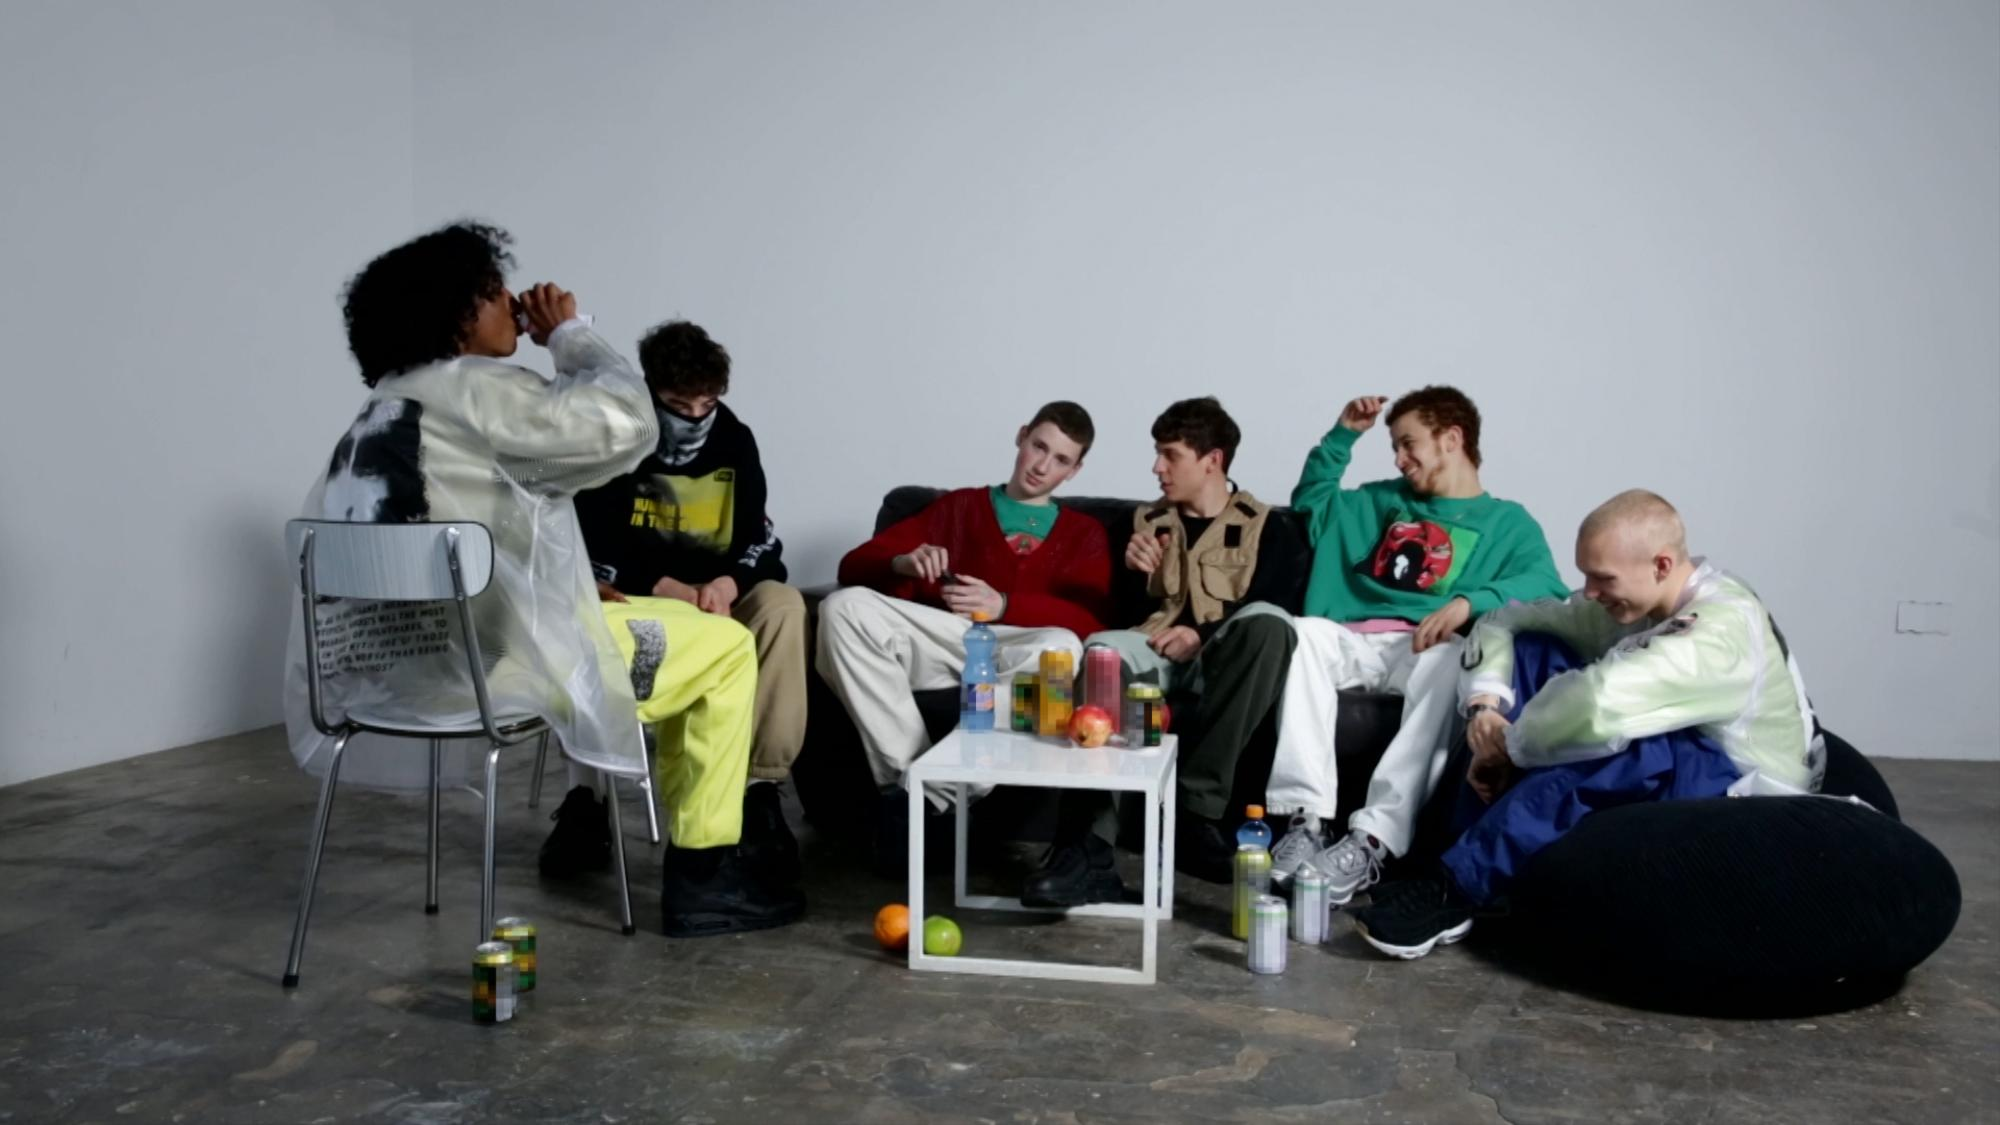 ​cav empt and nick knight discuss the past, present and future of youth